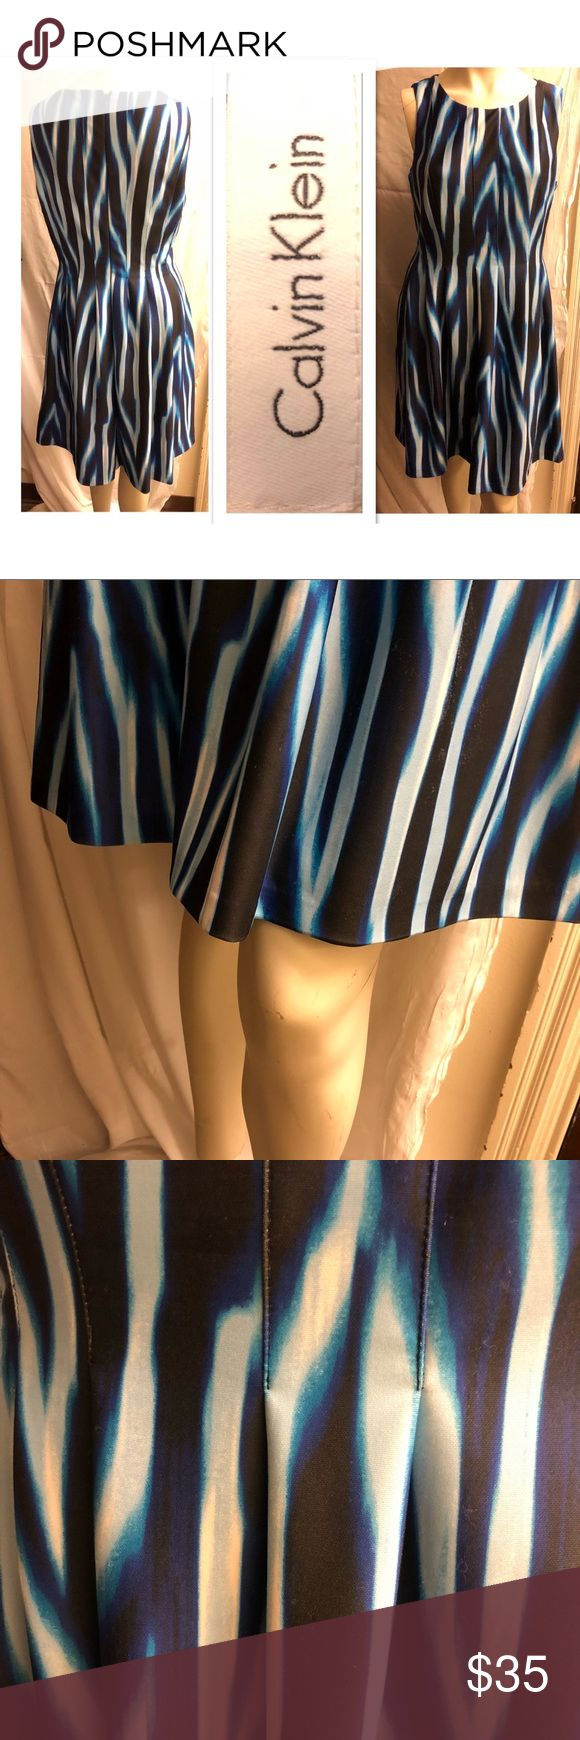 """Calvin Klein Scuba Stretch Tie Dye Stripe Dress This dress feels like heavy, stretch yoga pants. It's also fully lined, and the lining is stretch as well. It's tapered in at the waist and pleated to allow for a fuller skirt. Very comfortable!  I would say turquoise, sky blue, royal blue, black and white. Hidden black nylon zipper 20 inches with hook and eye at top Flat measurements: Armpit to armpit 20"""" Shoulder to shoulder 14"""" Shoulder seem to bottom of the dress 39"""" Calvin Klein Dresses"""